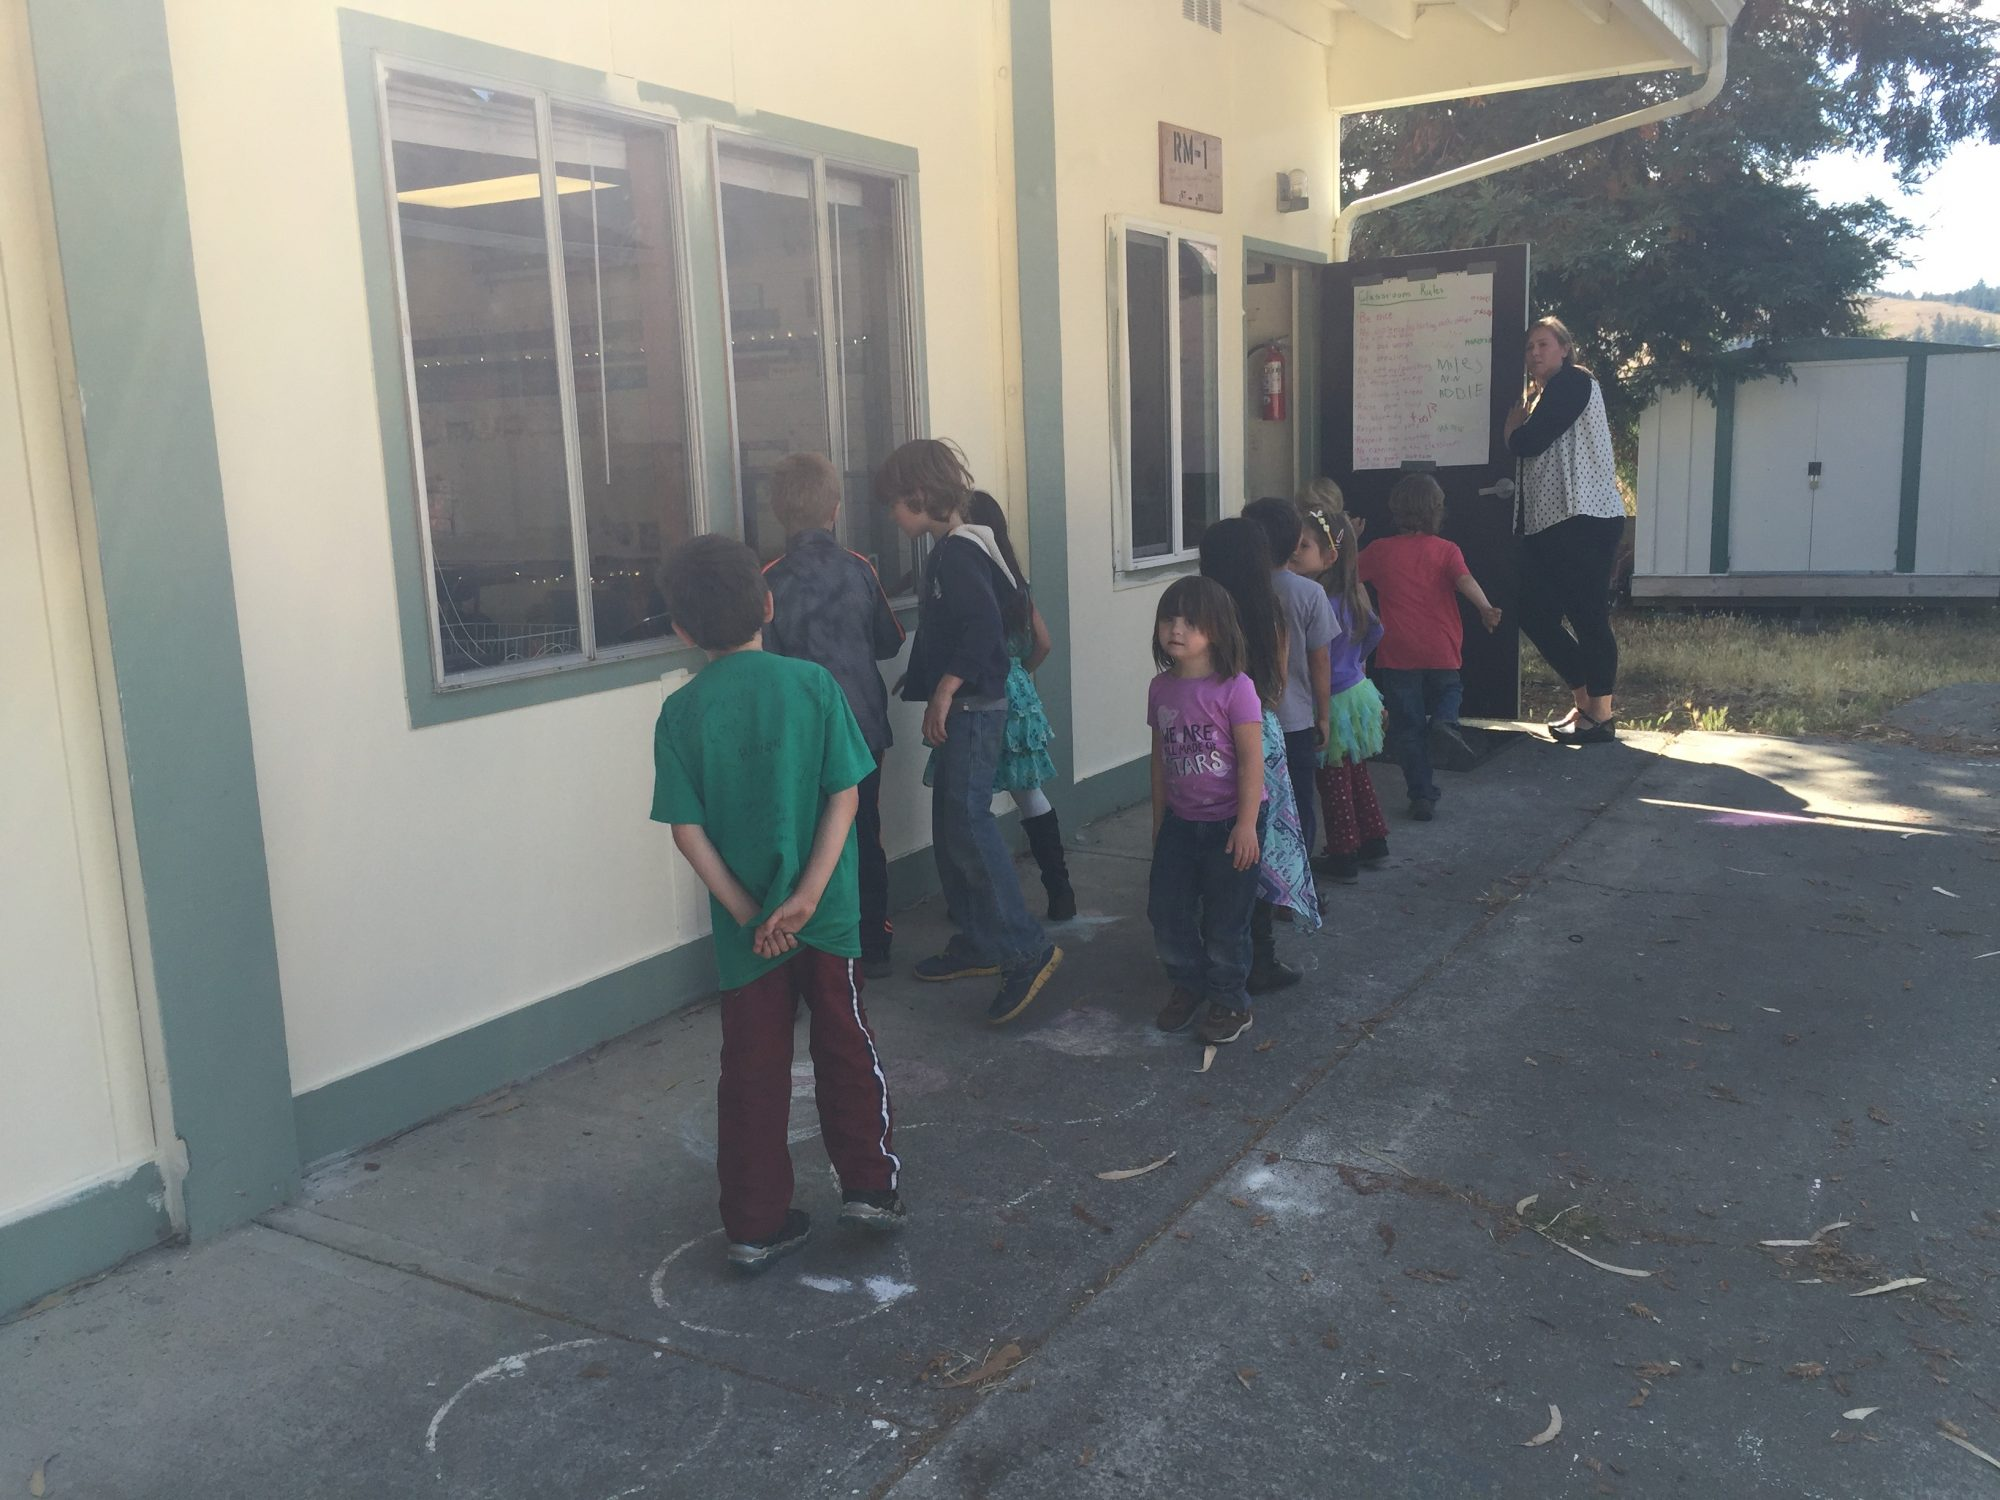 moxie's class lined up, going into class